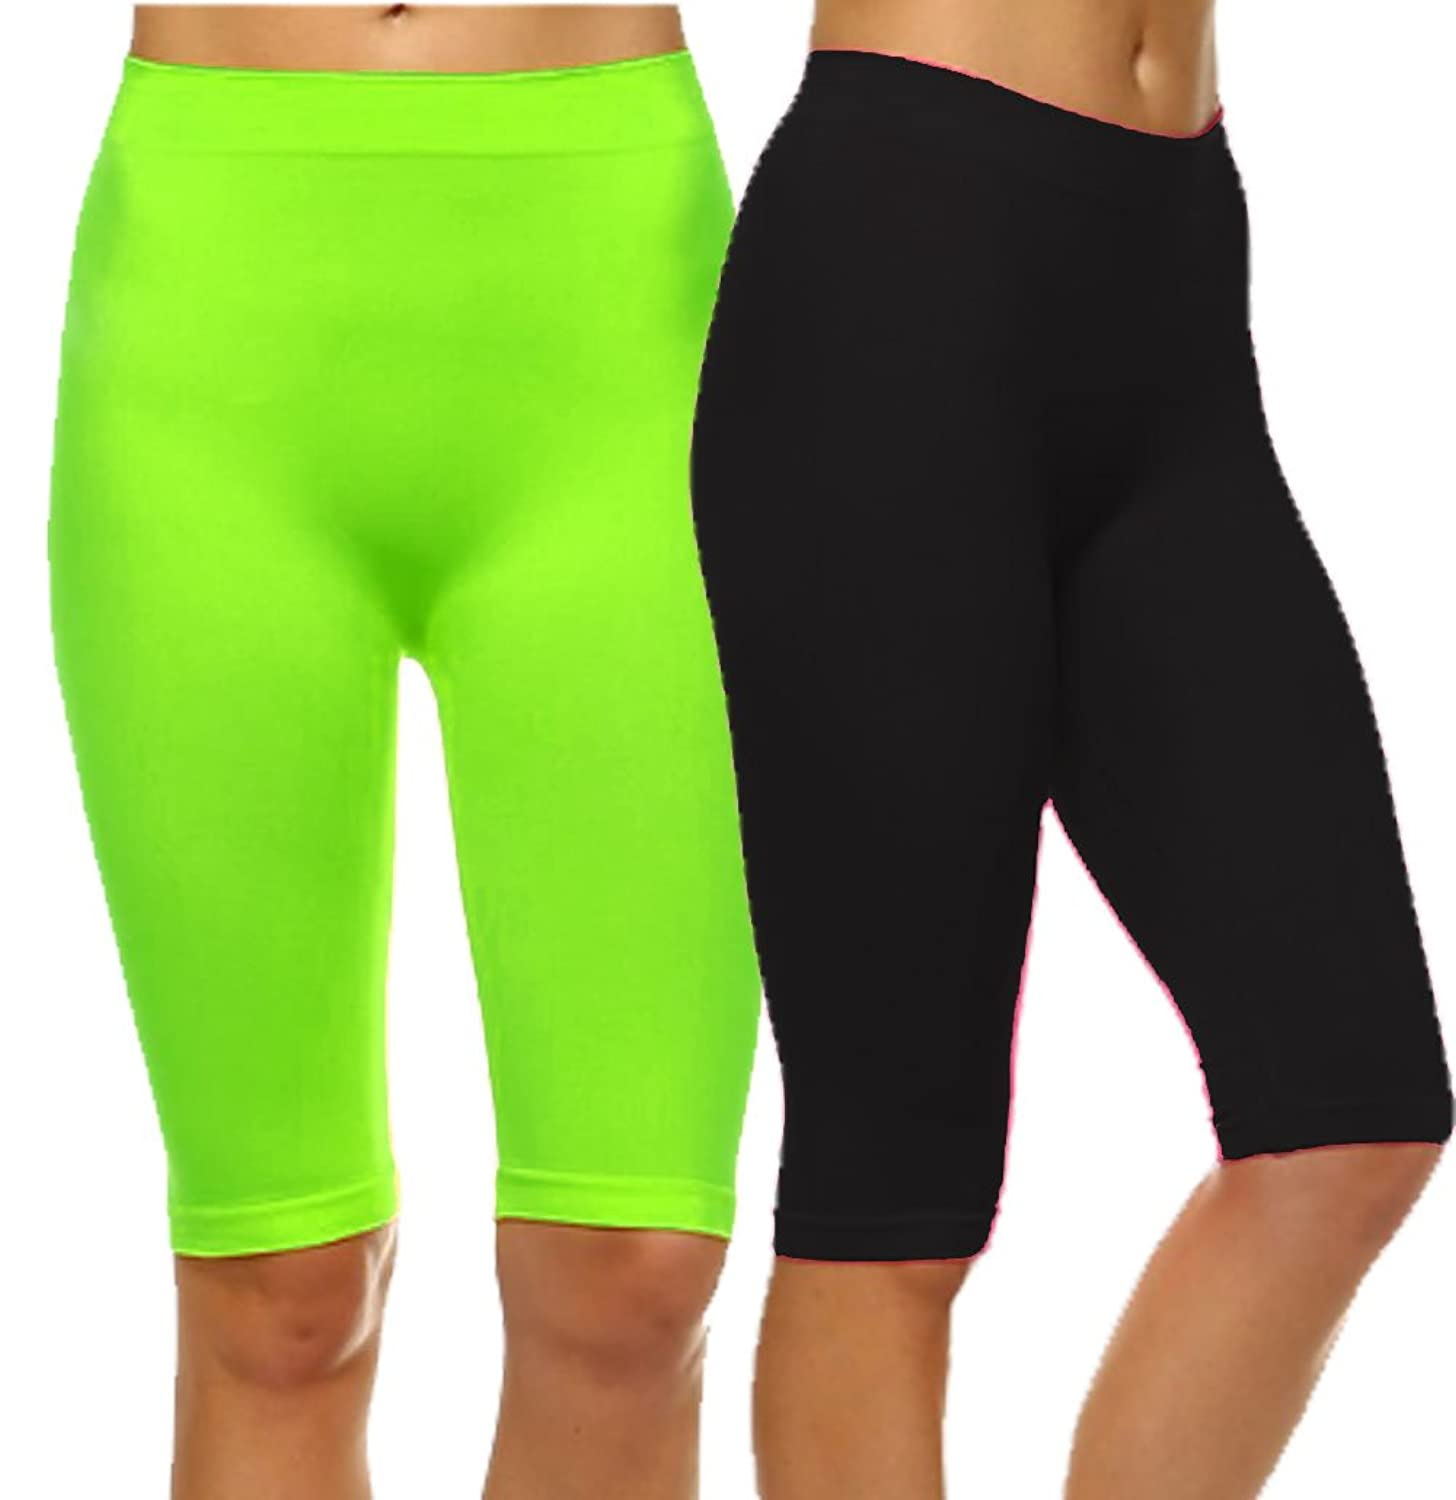 Basic Solid Biker Knee Length Shorts Spandex Yoga Leggings